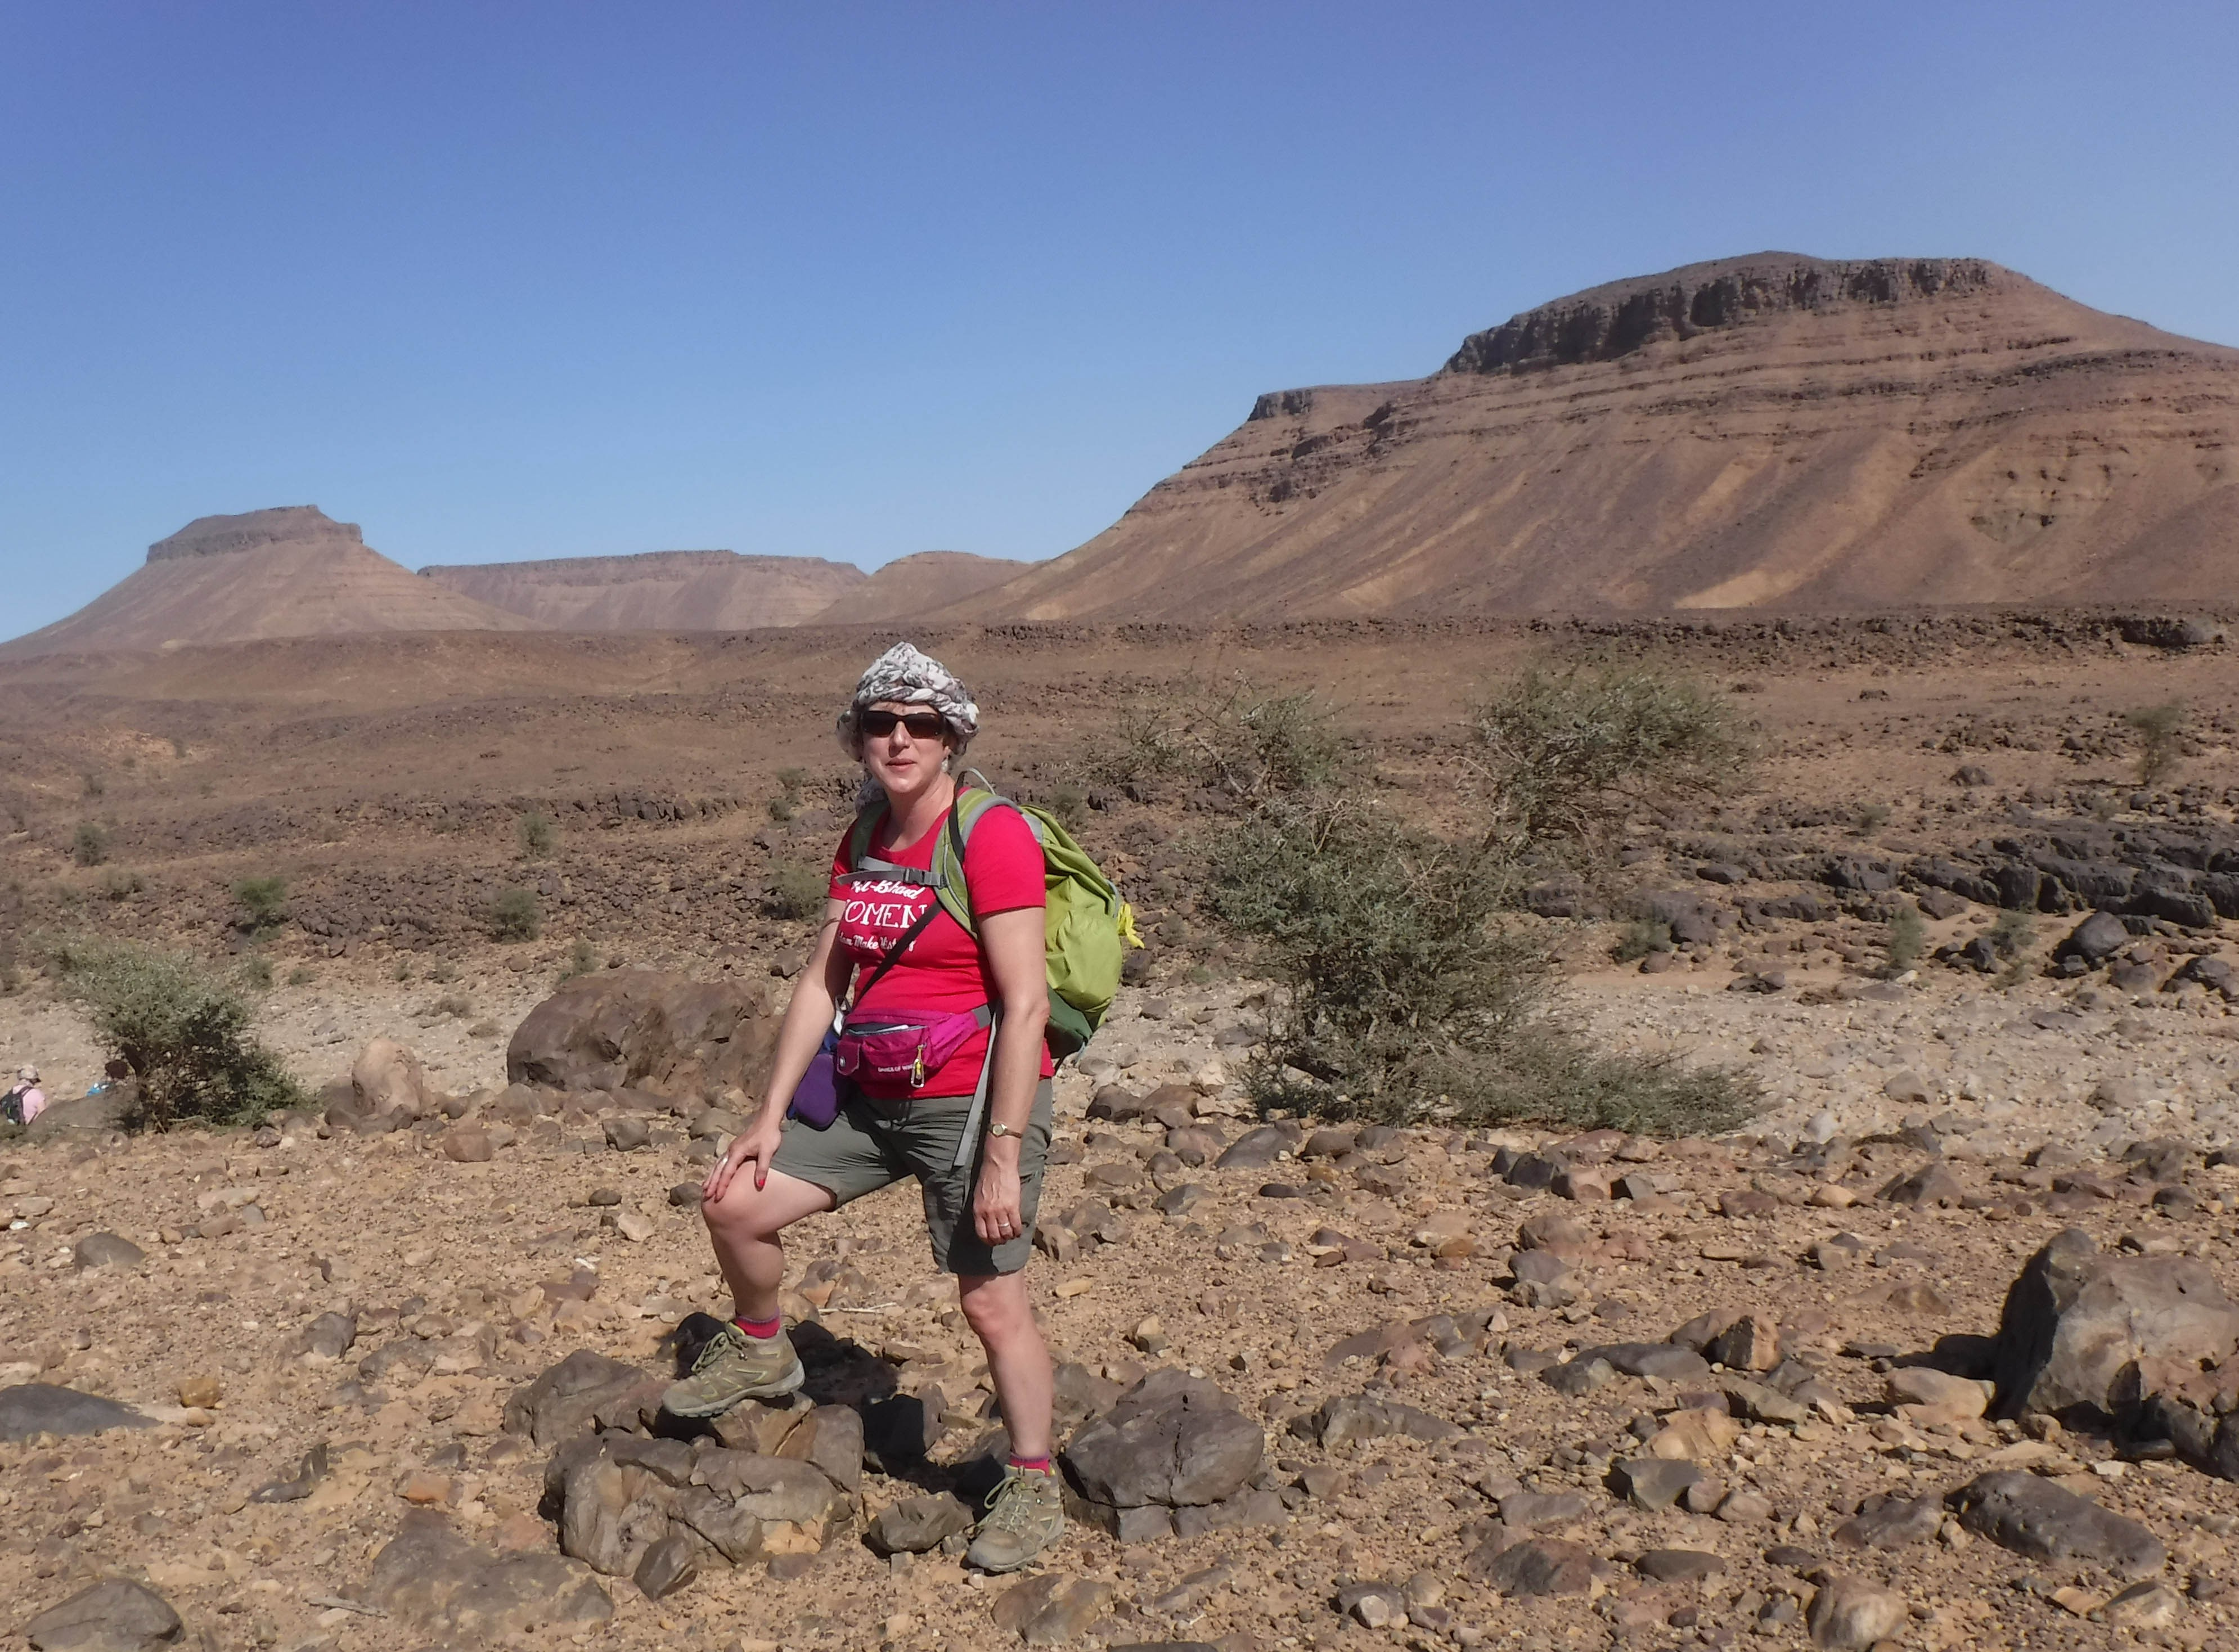 The author dressed in shorts and t-shirt with traditional desert headdress with rocky mountain back drop blue sky and hot